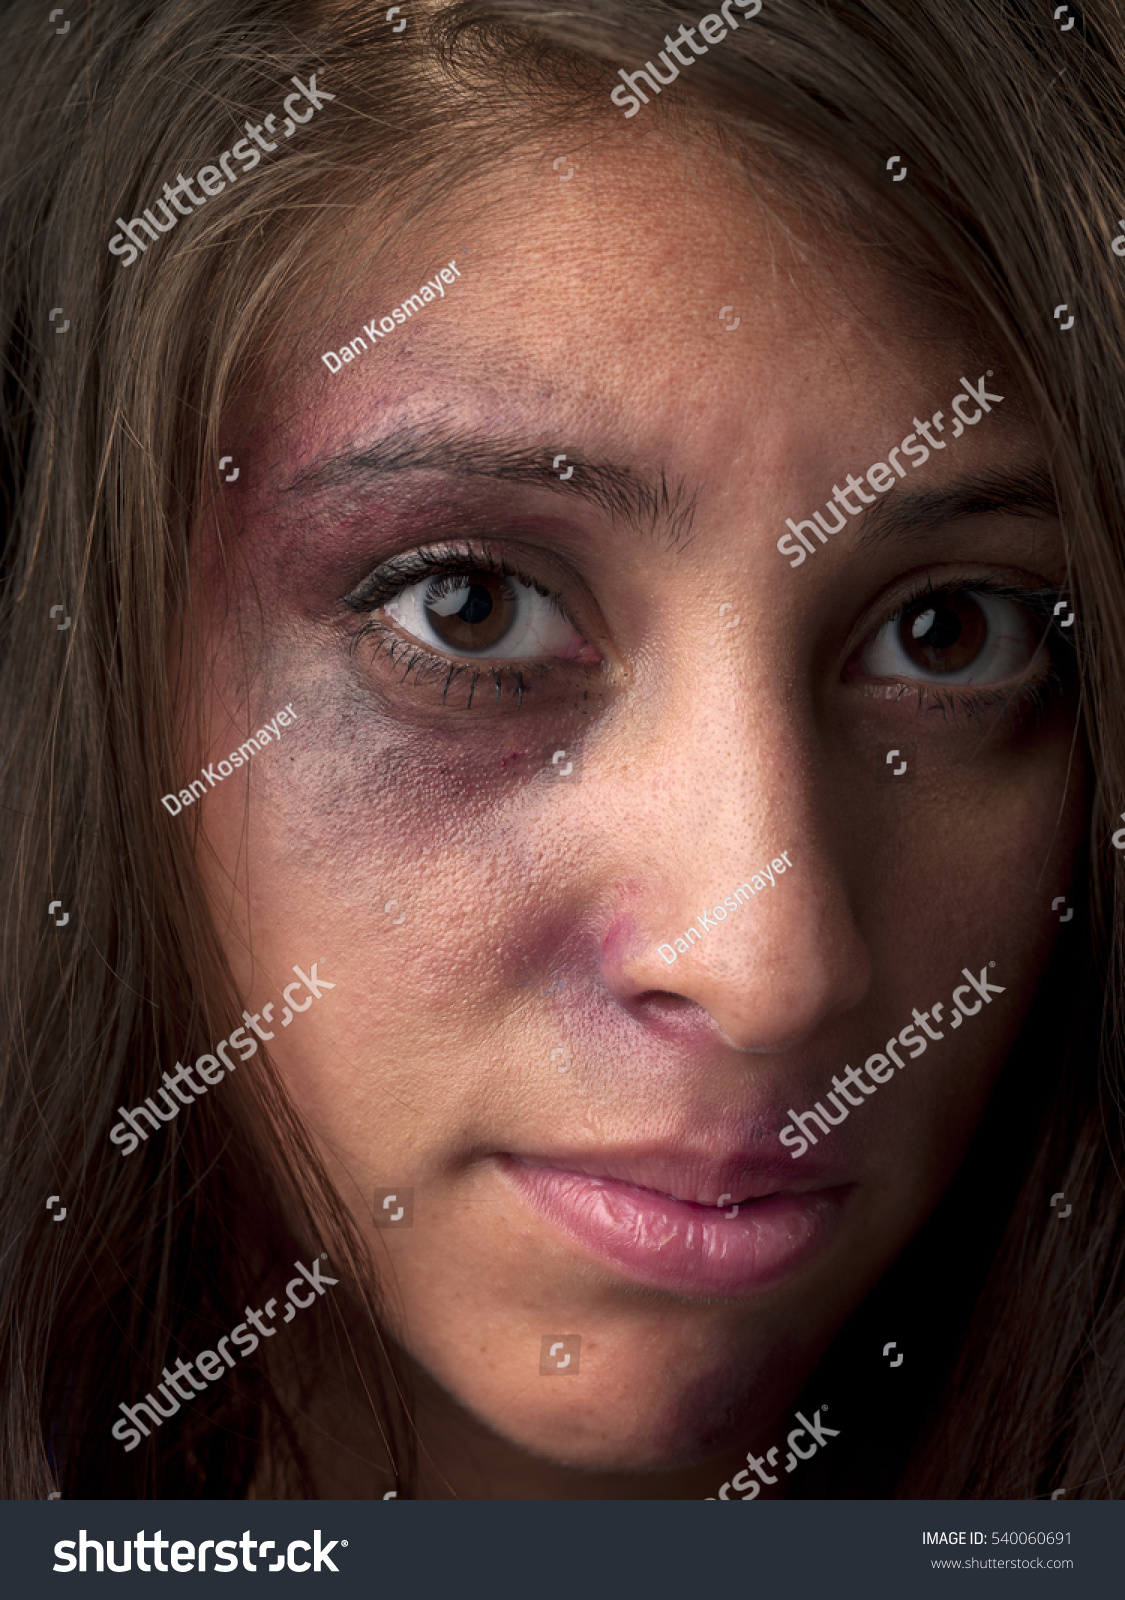 woman body facial injuries which can stock photo 540060691